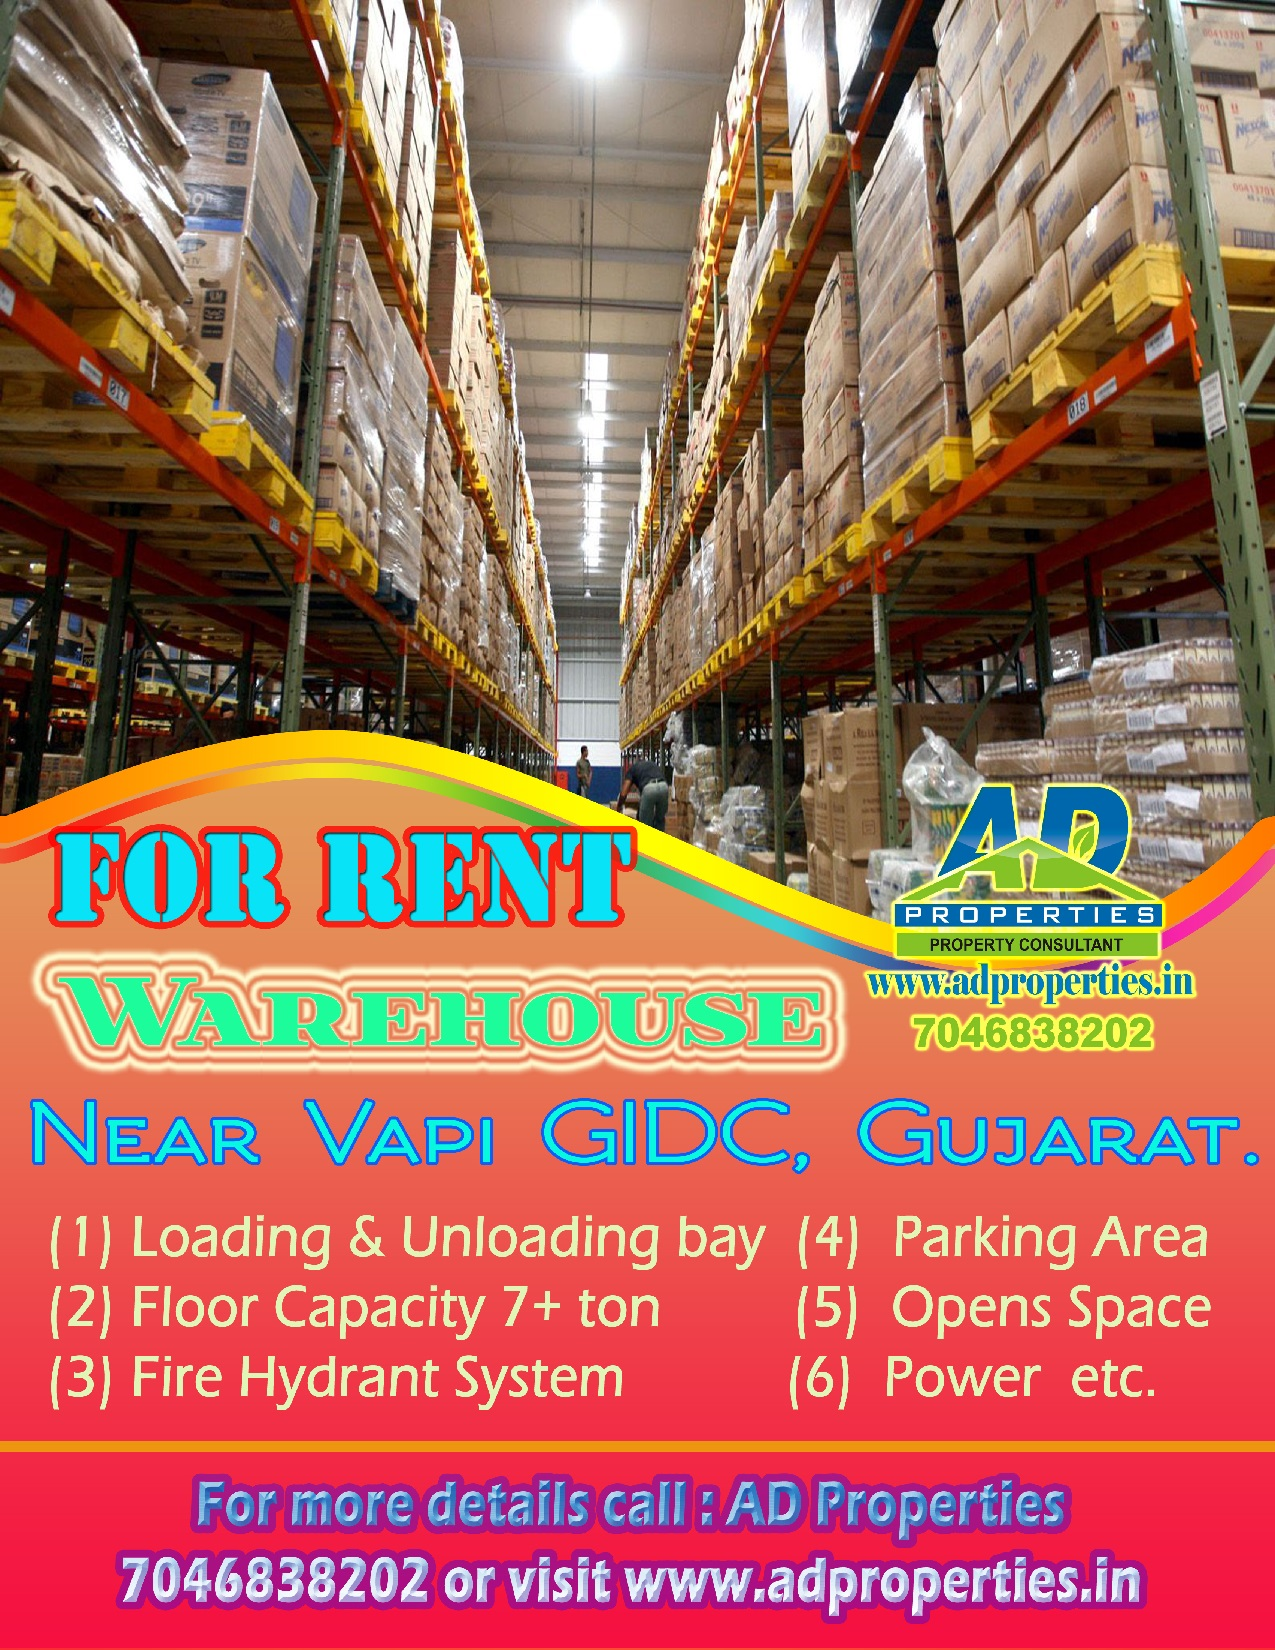 Warehouse for RENT at Vapi GIDC